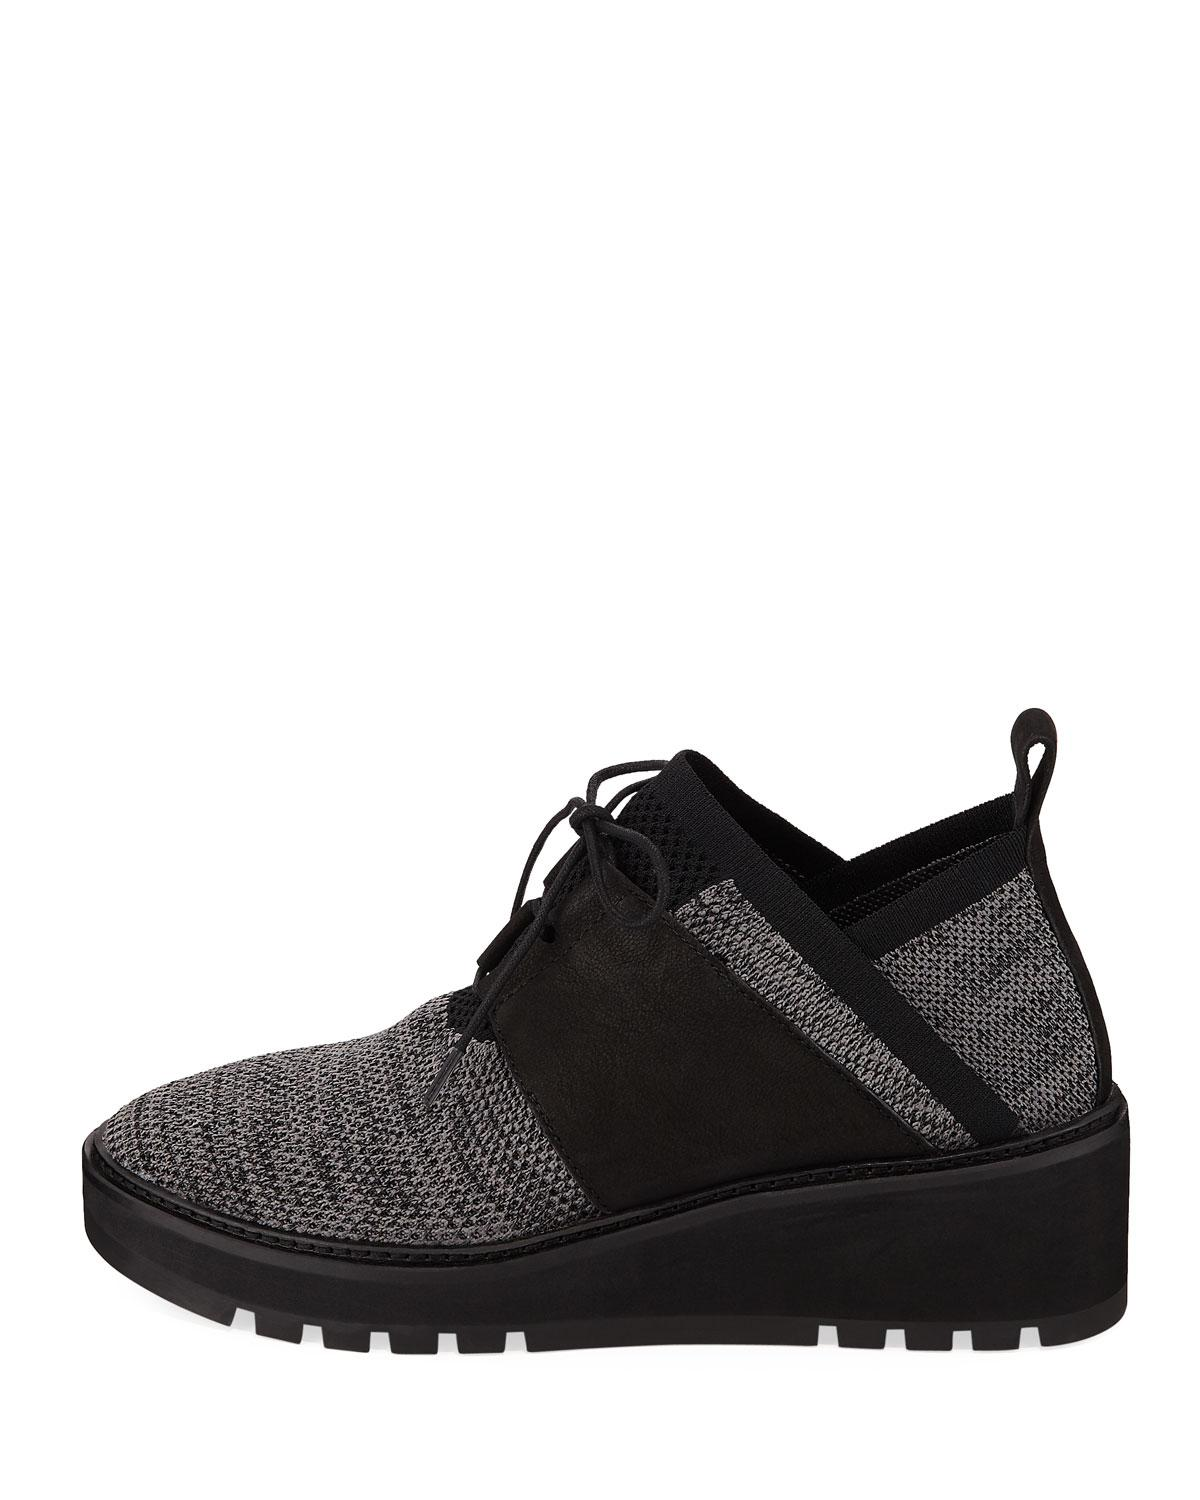 ad92b1b6fa29 Lyst - Eileen Fisher Wilson Lace-up Knit Wedge Walking Shoes in Black for  Men